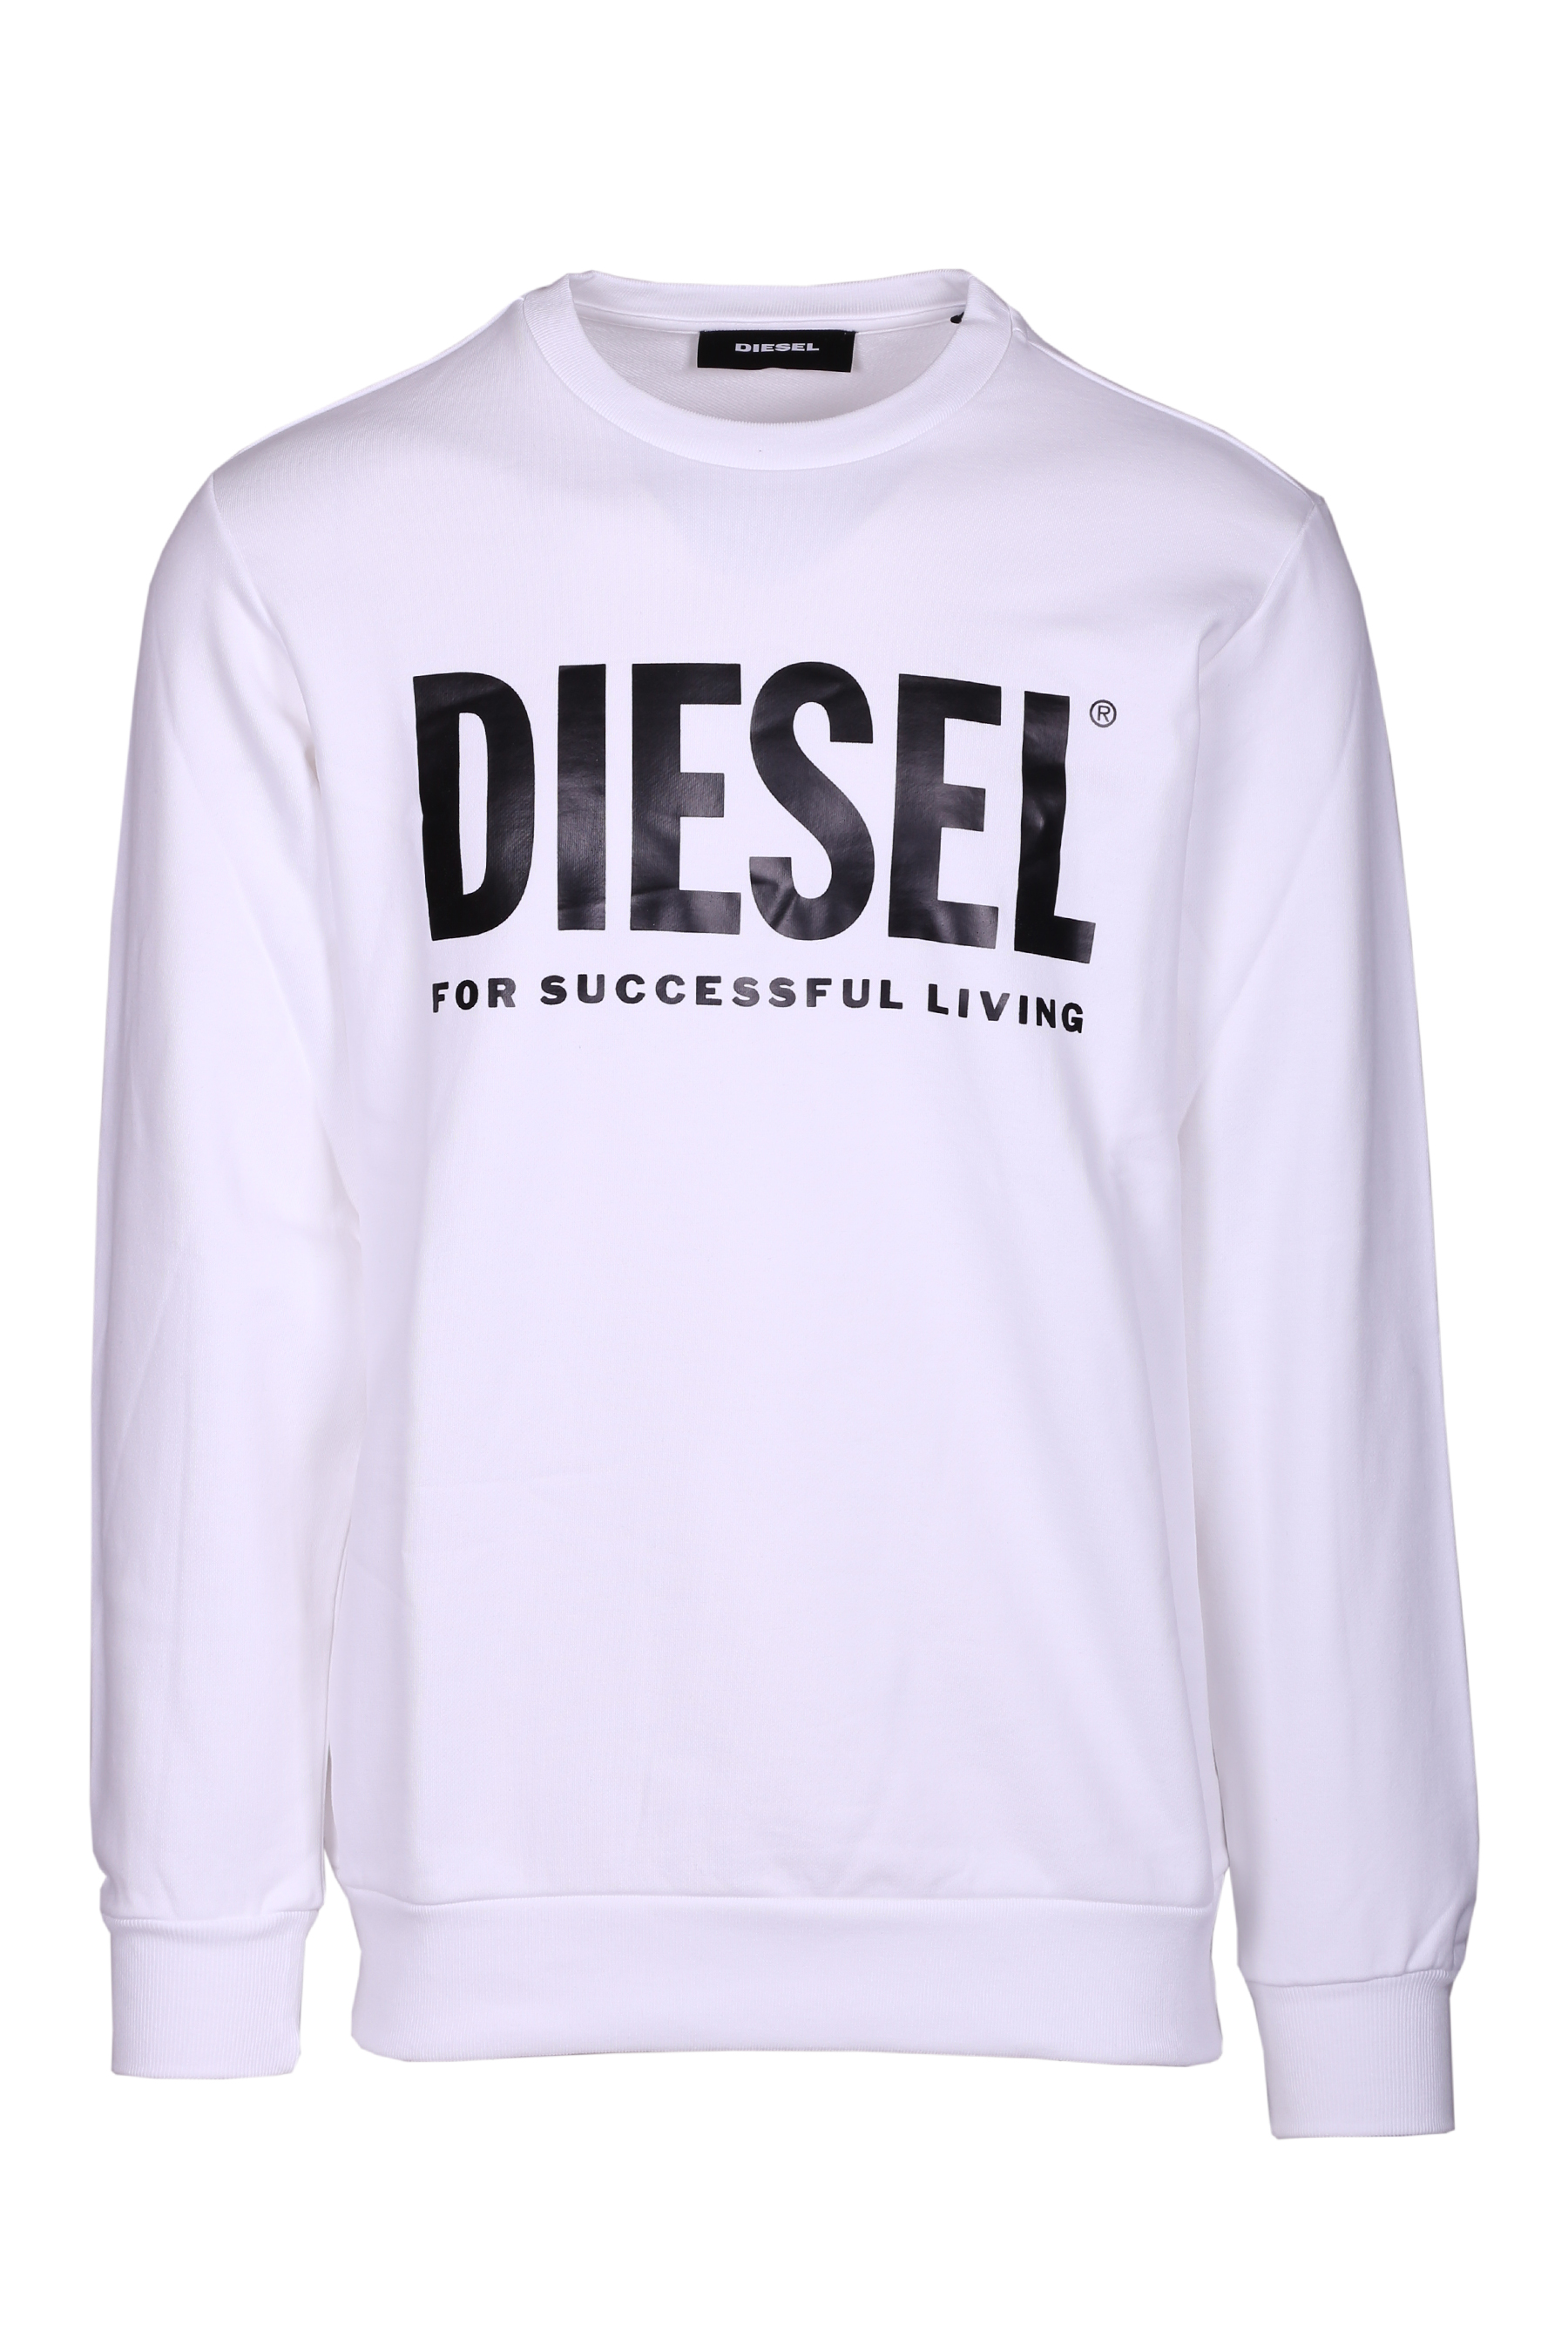 Cotton sweatshirt with logo s-gir-division DIESEL | Sweatshirt | 00SWFH0BAWT100